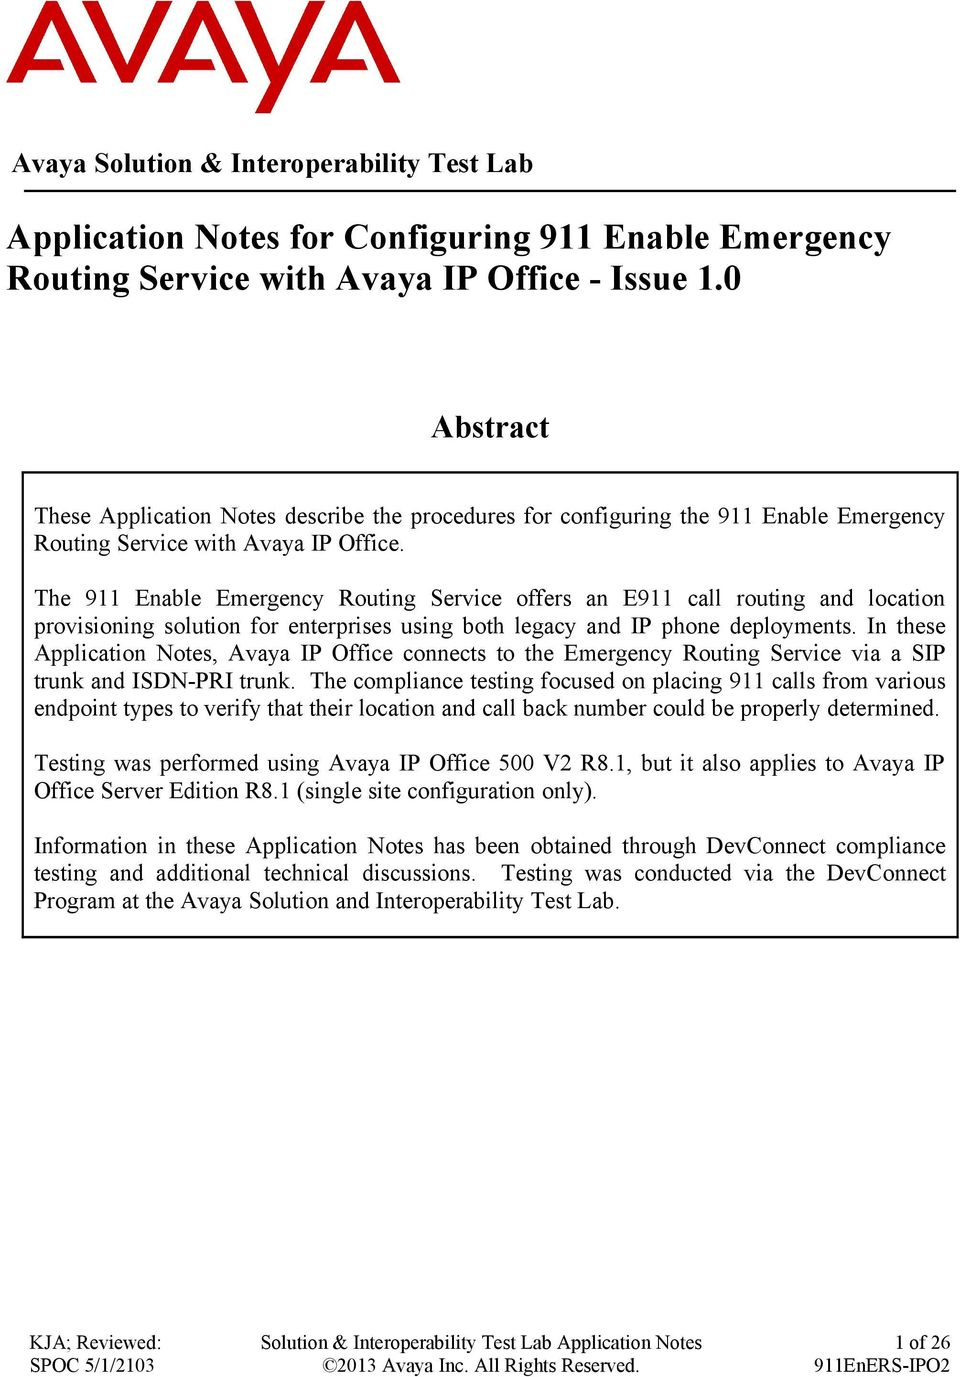 The 911 Enable Emergency Routing Service offers an E911 call routing and location provisioning solution for enterprises using both legacy and IP phone deployments.